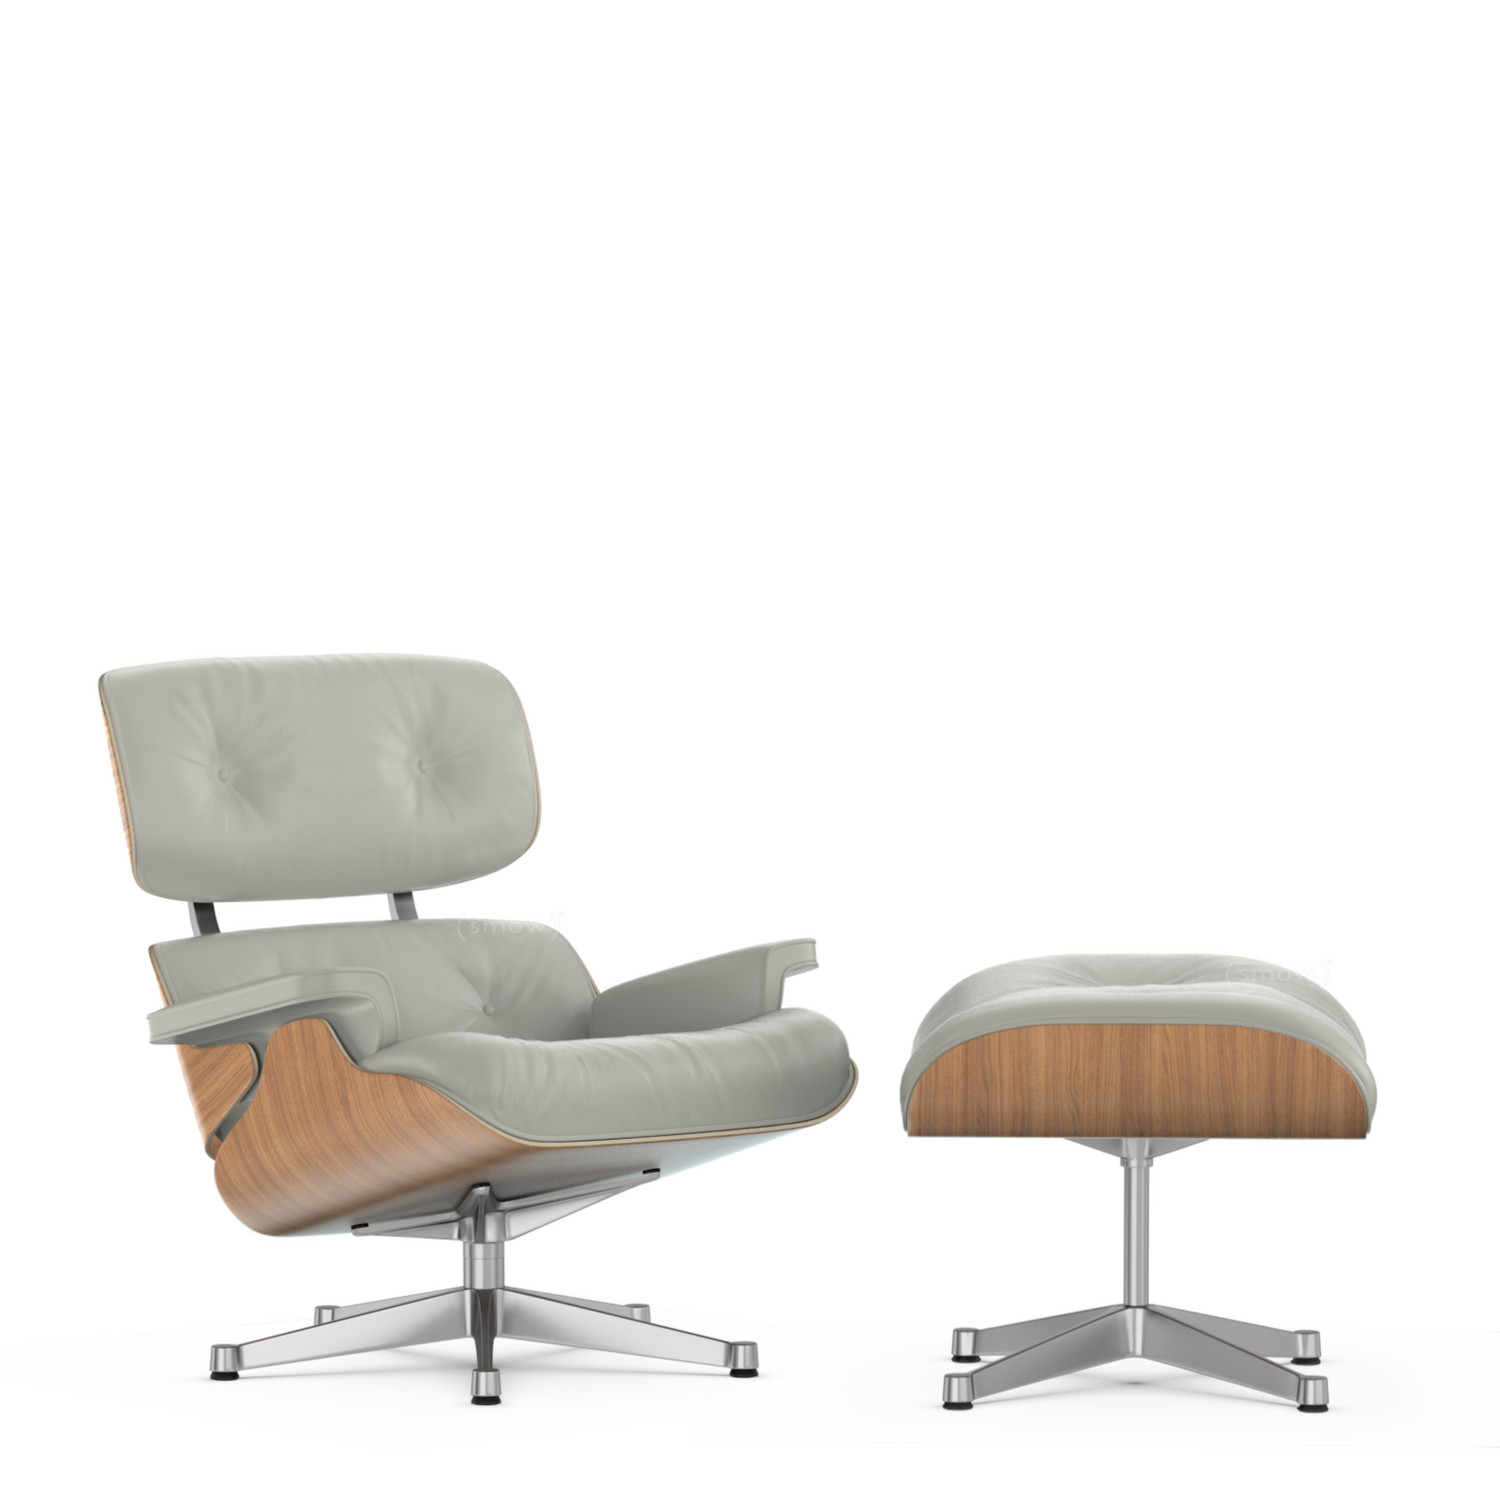 vitra lounge chair ottoman beauty versions walnut with white